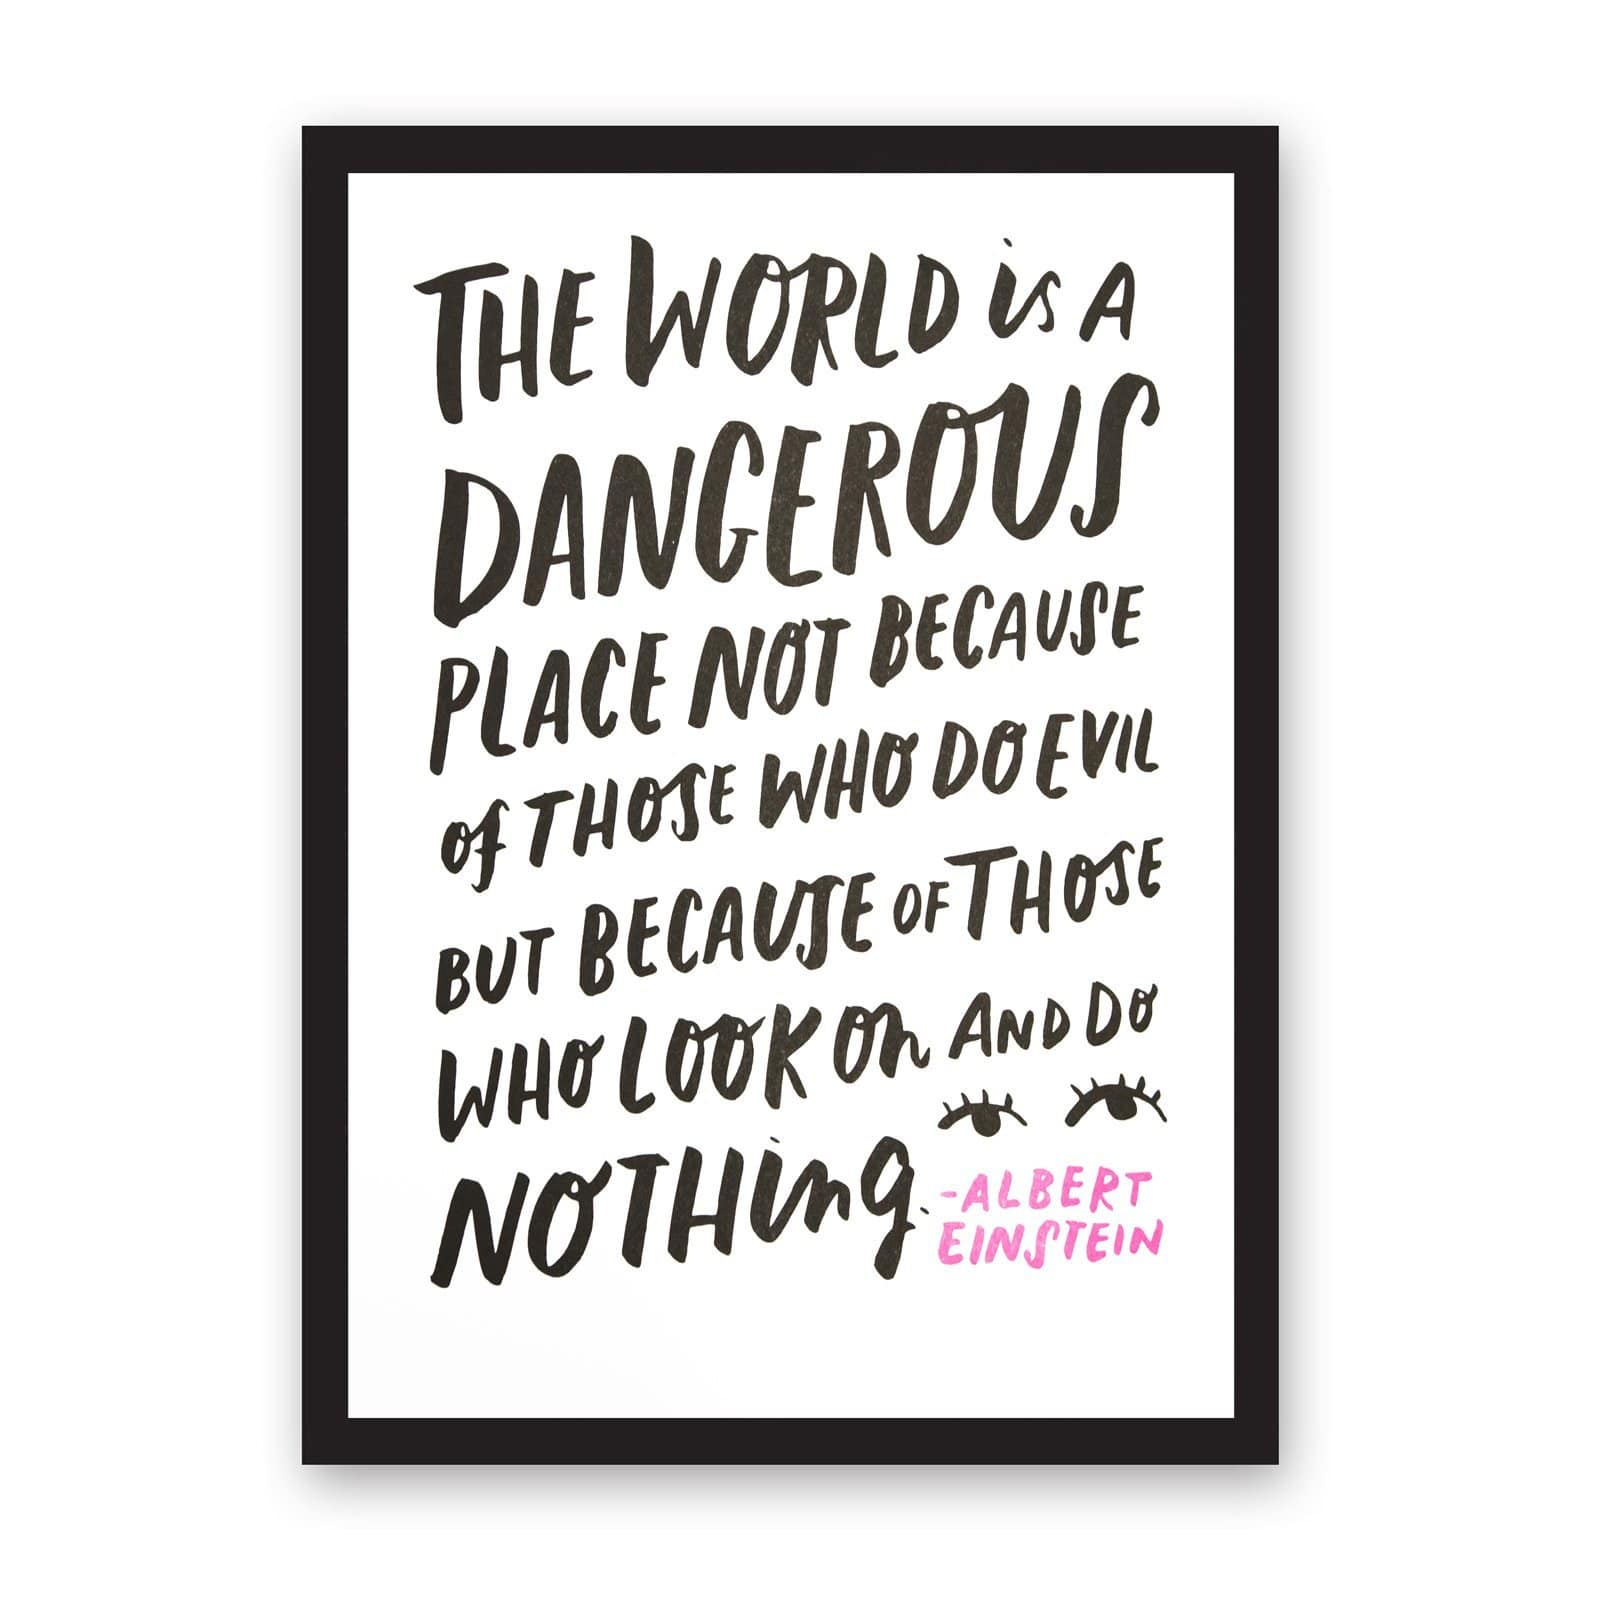 Albert Einstein quote calligraphy art print in black with pops of pink, on white background